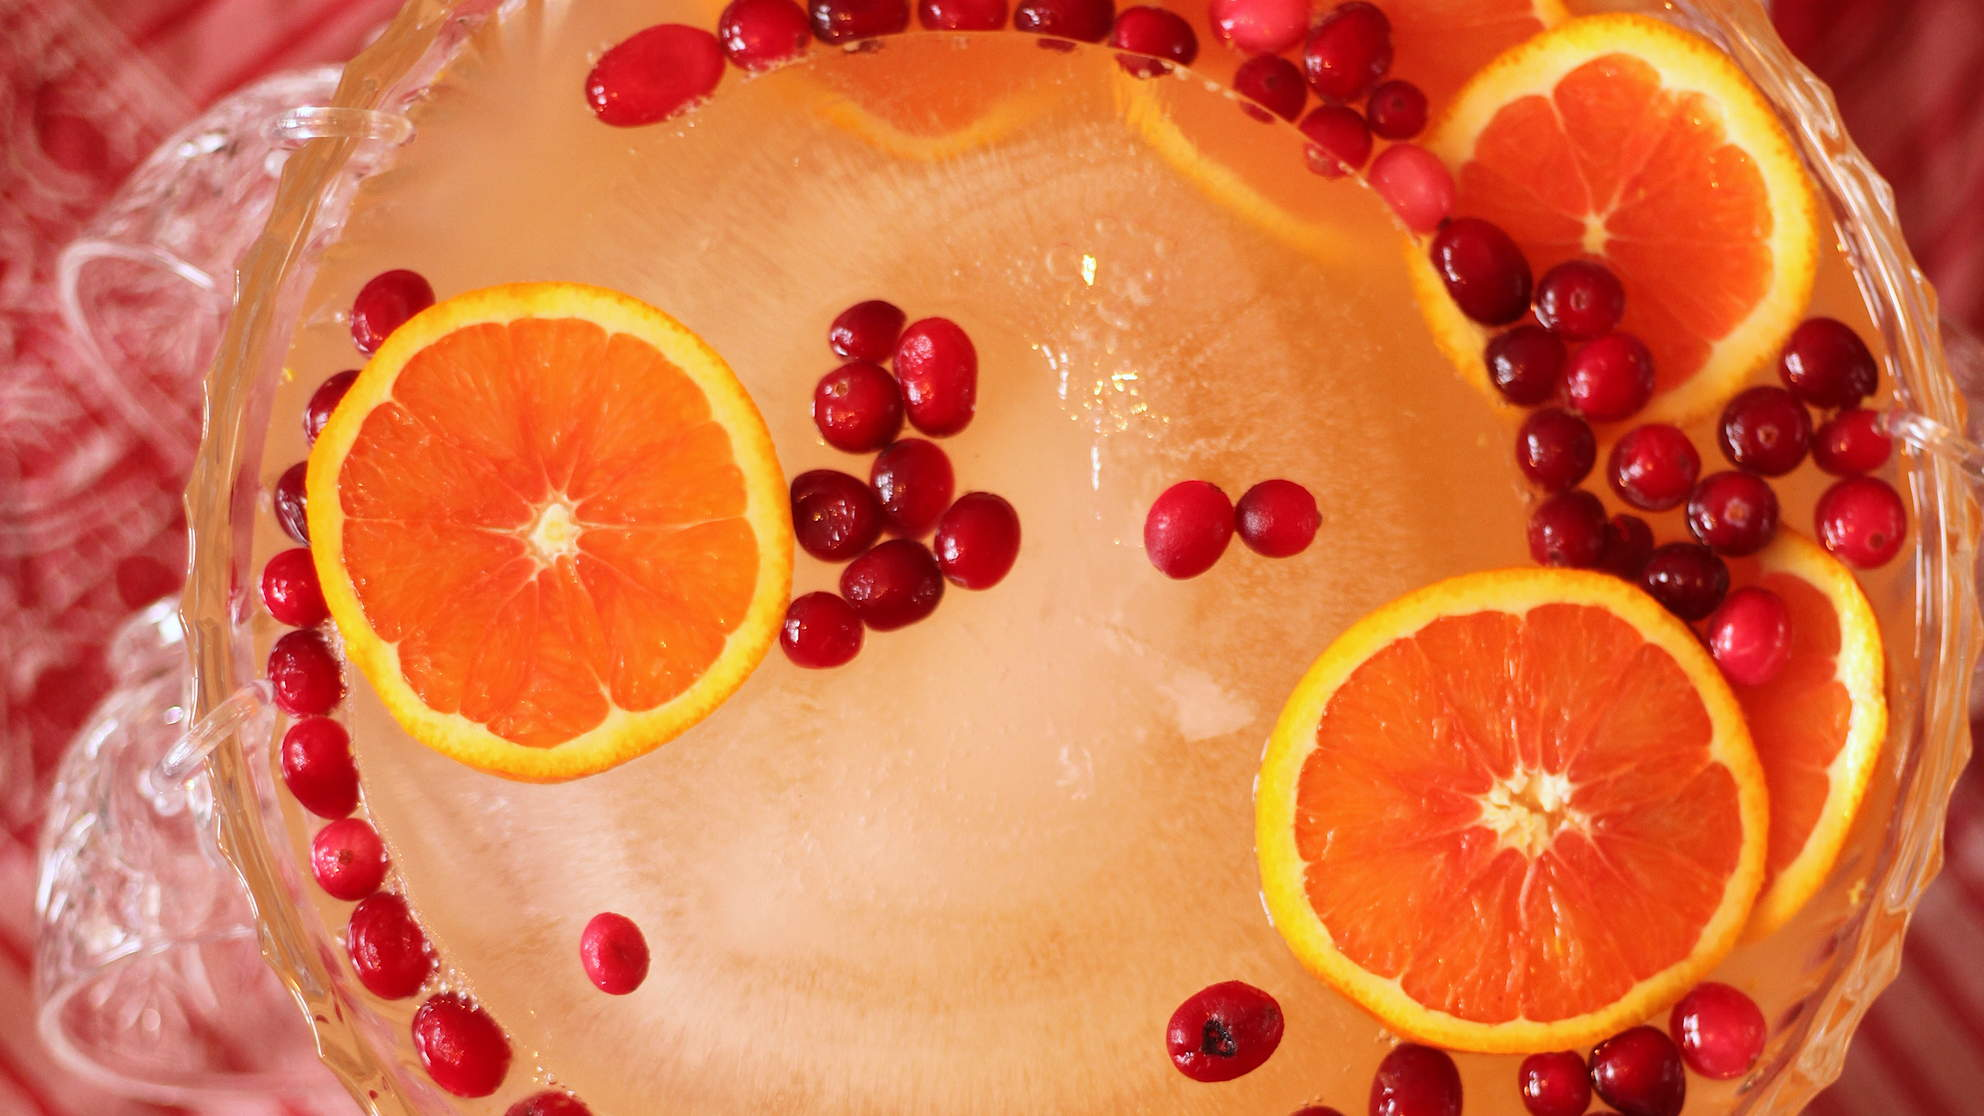 Your Guests Will Love This Sweet, Spiked Holiday Punch That's Packed With Superfoods